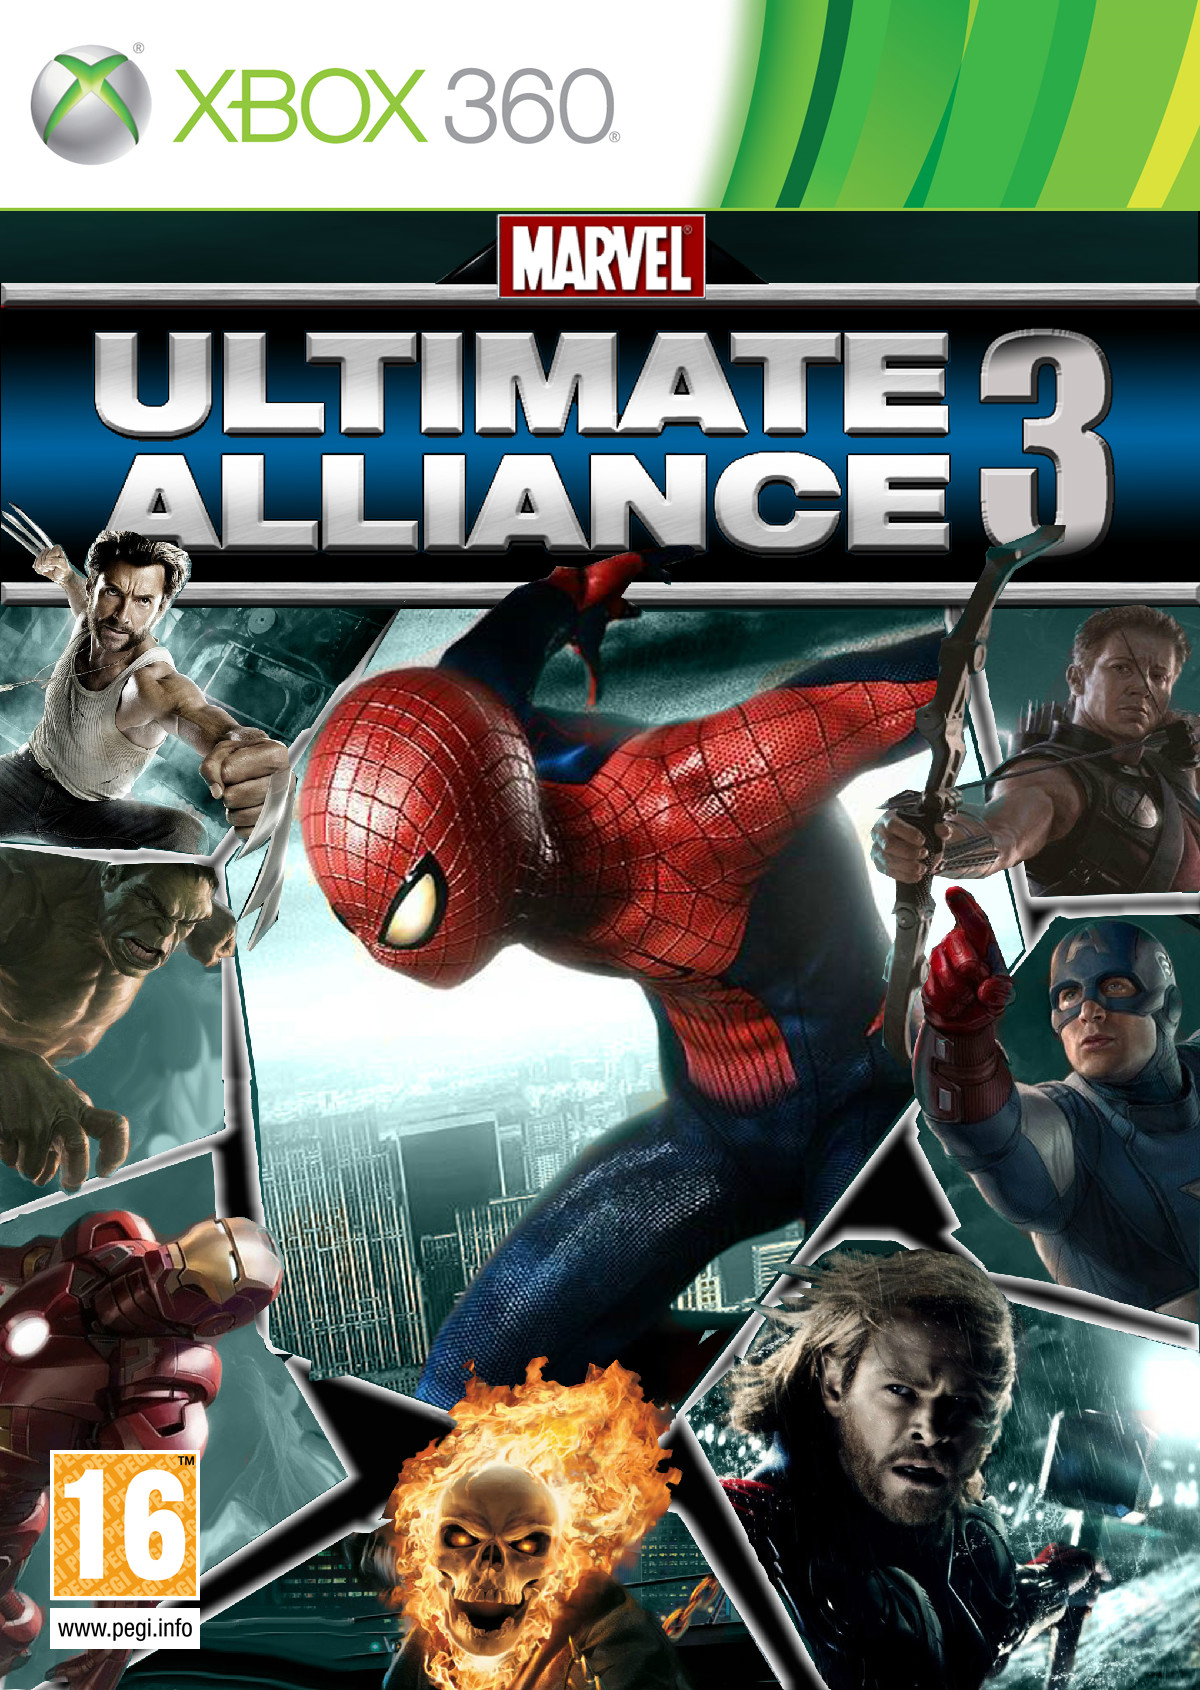 Marvel's Ultimate Alliance (DuttPanda)